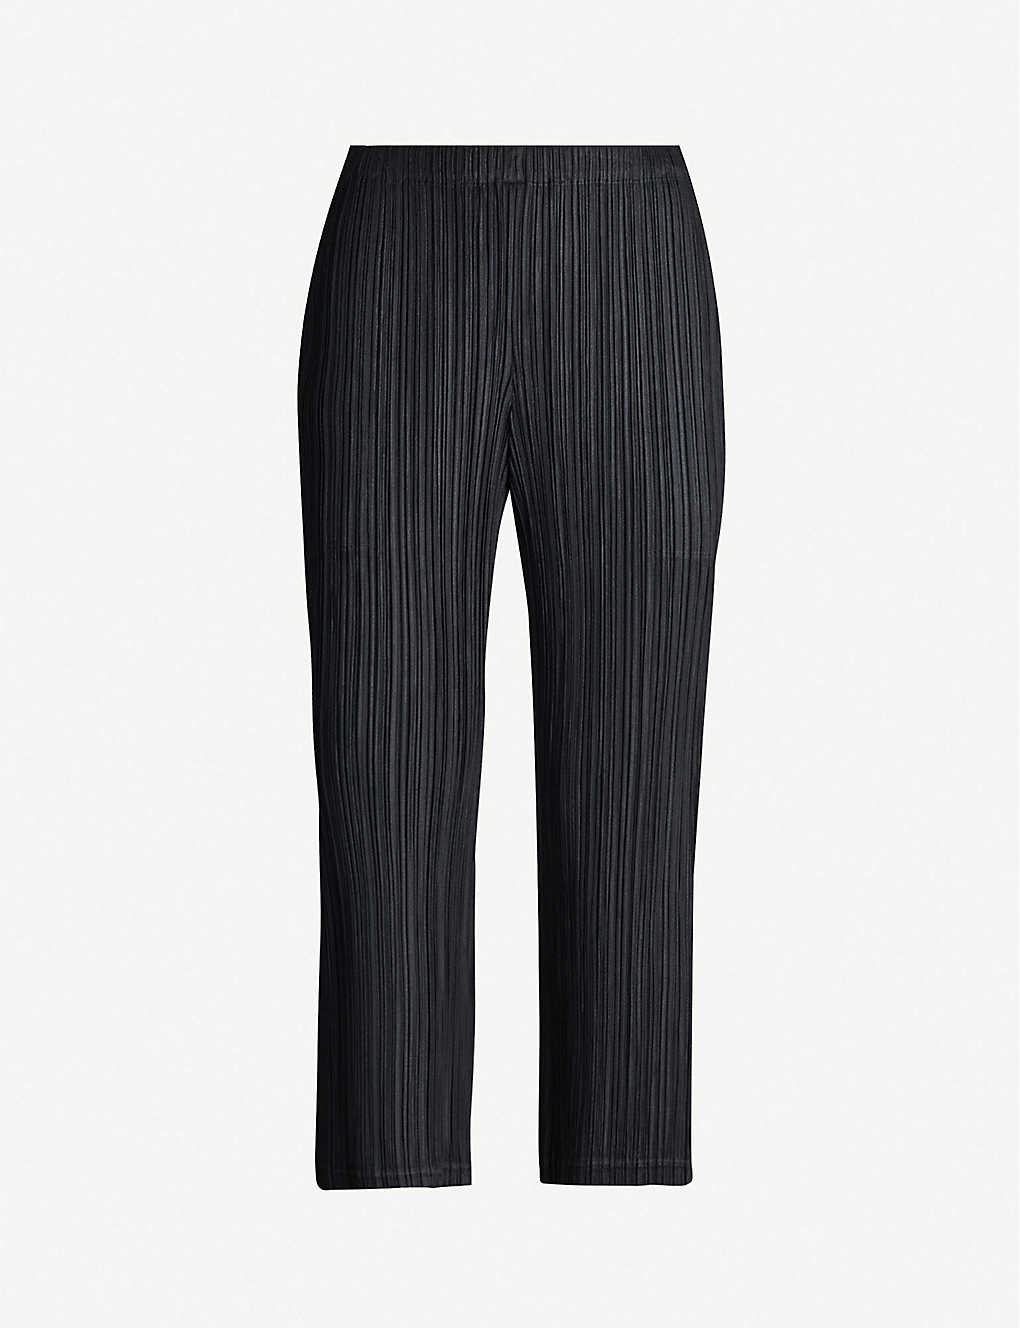 f20798e97c PLEATS PLEASE ISSEY MIYAKE - Cropped high-rise pleated crepe trousers |  Selfridges.com